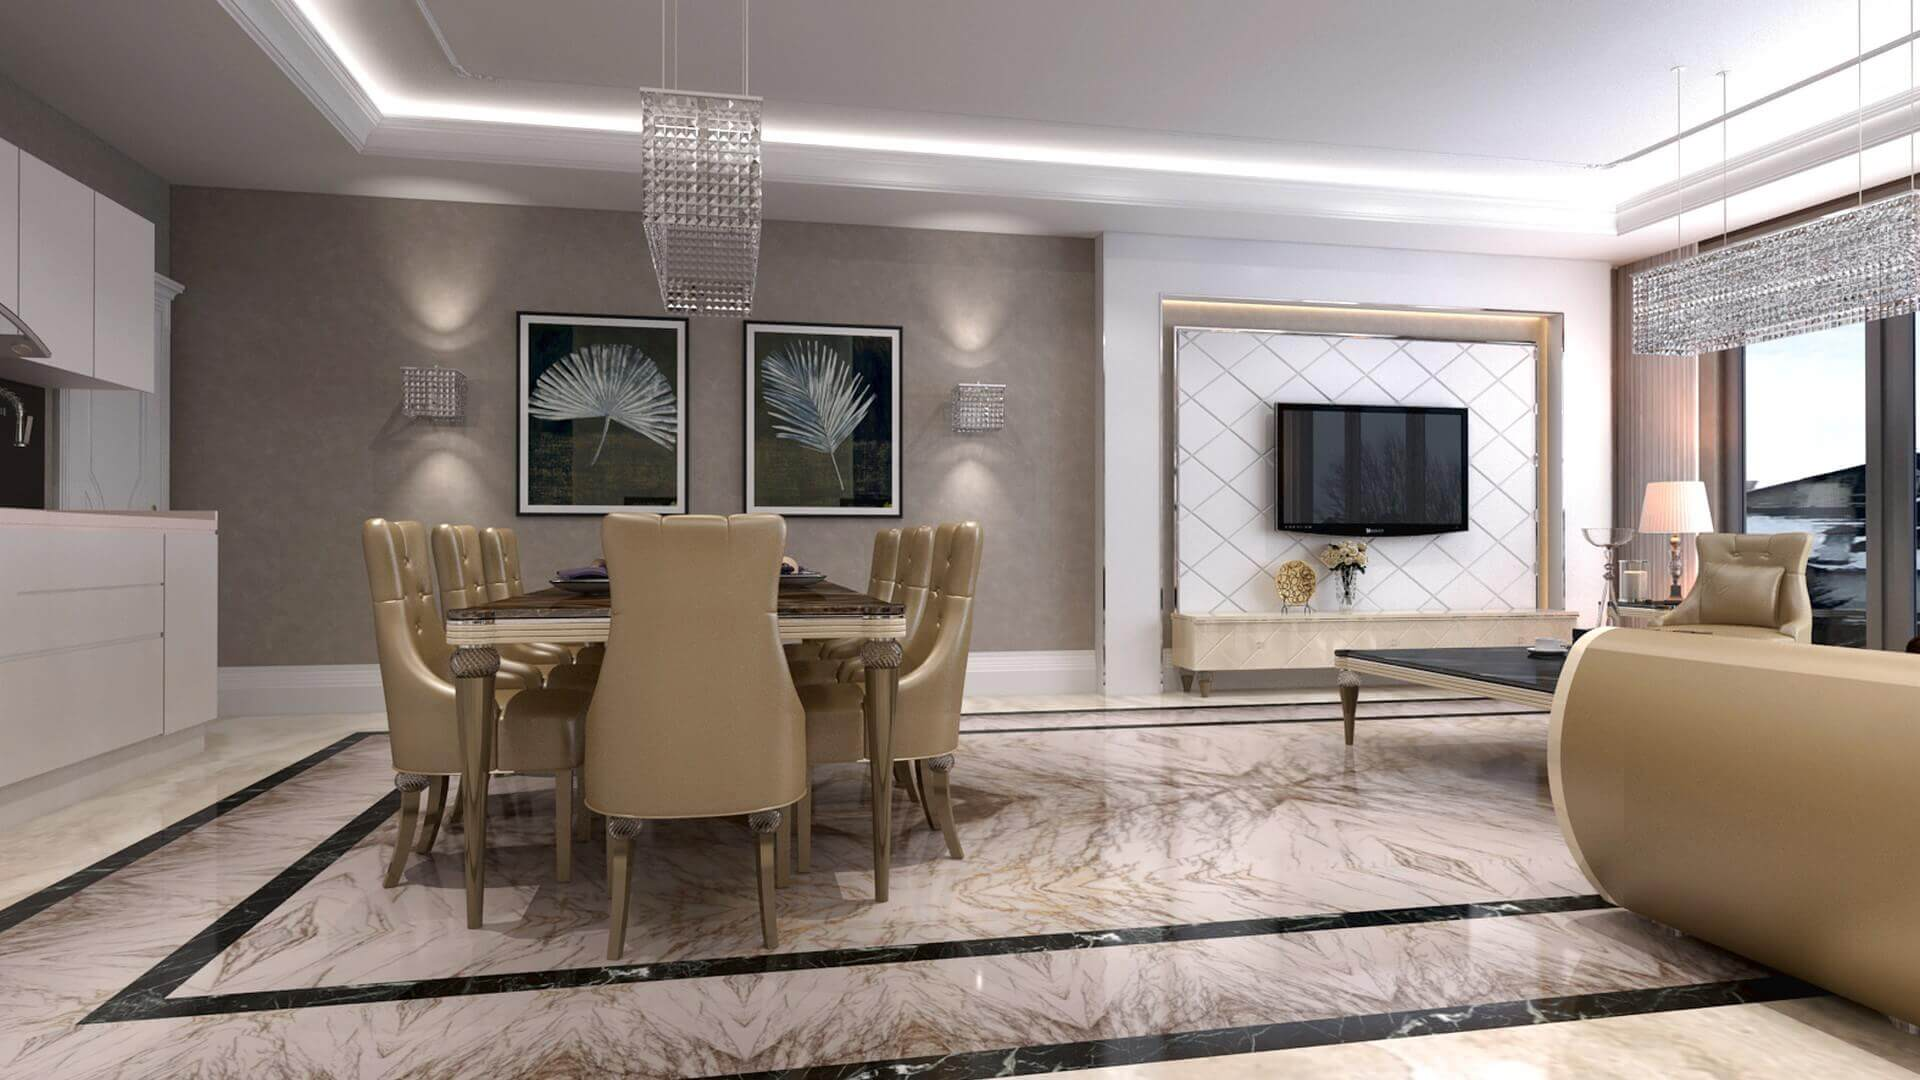 Ankorman Evleri 2849 Private Project Residential